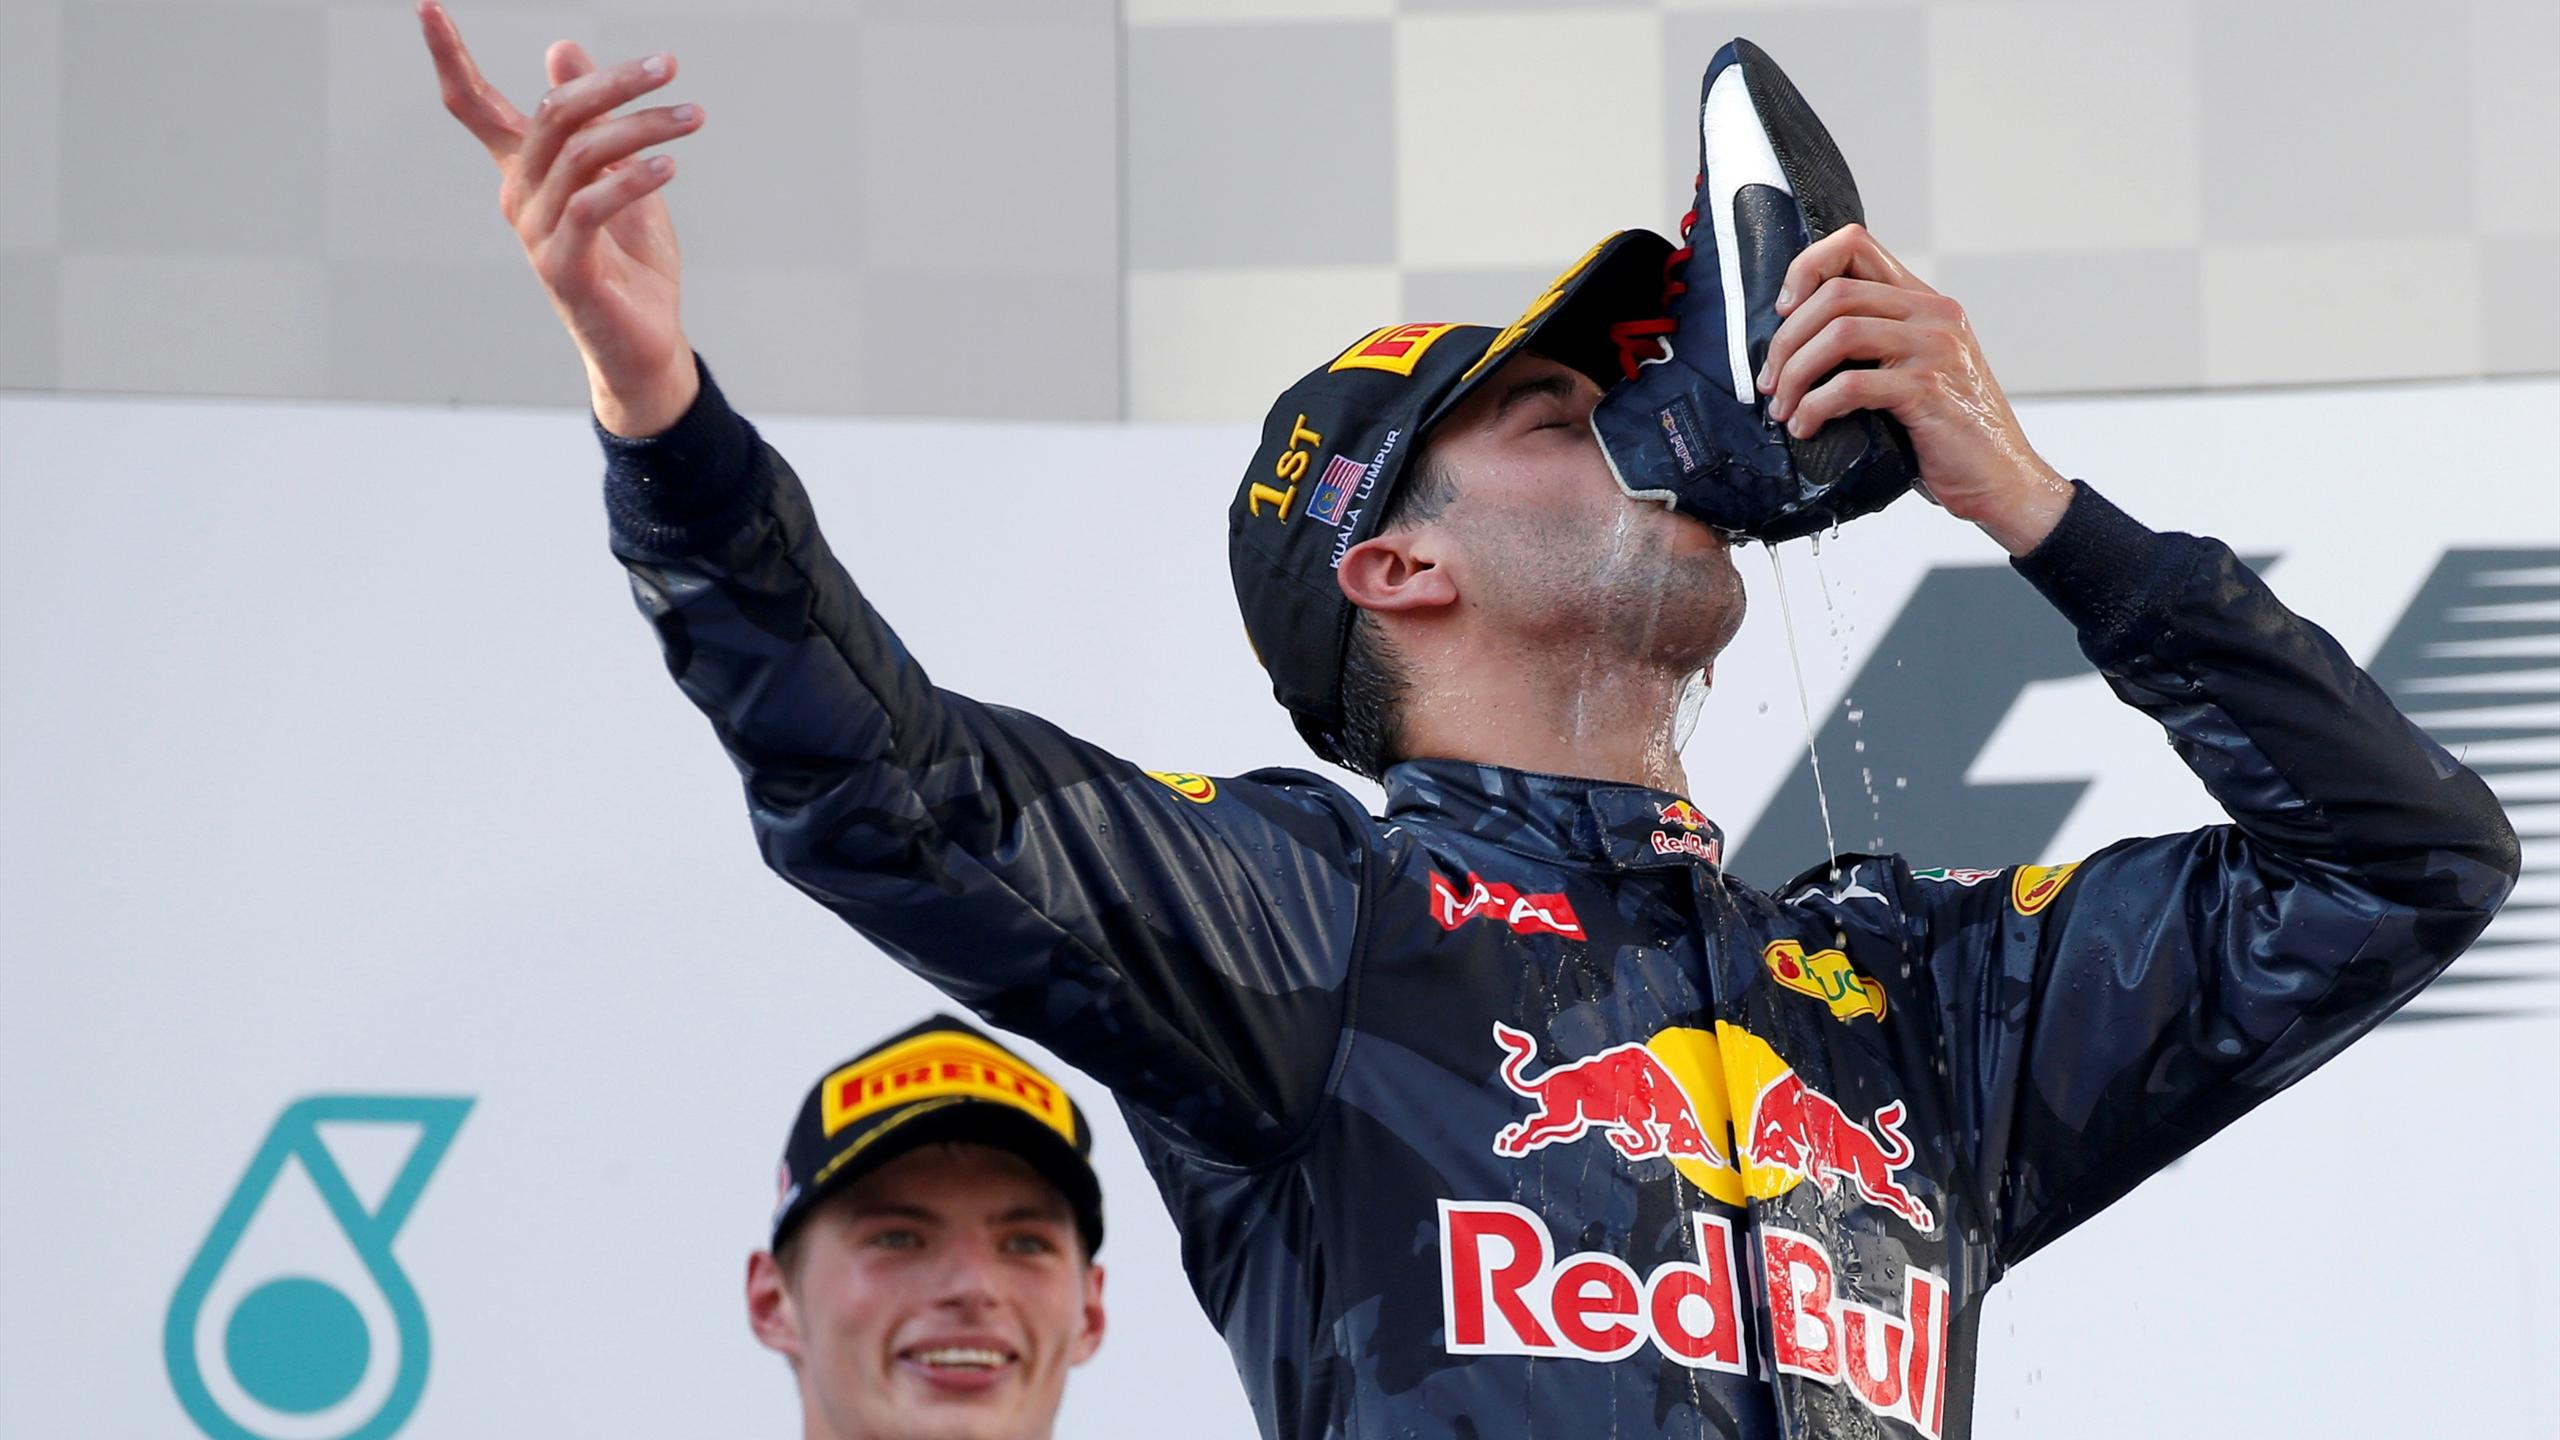 Red Bull's Daniel Ricciardo of Australia drinks from his shoe as he celebrates on the podium in Malaysia